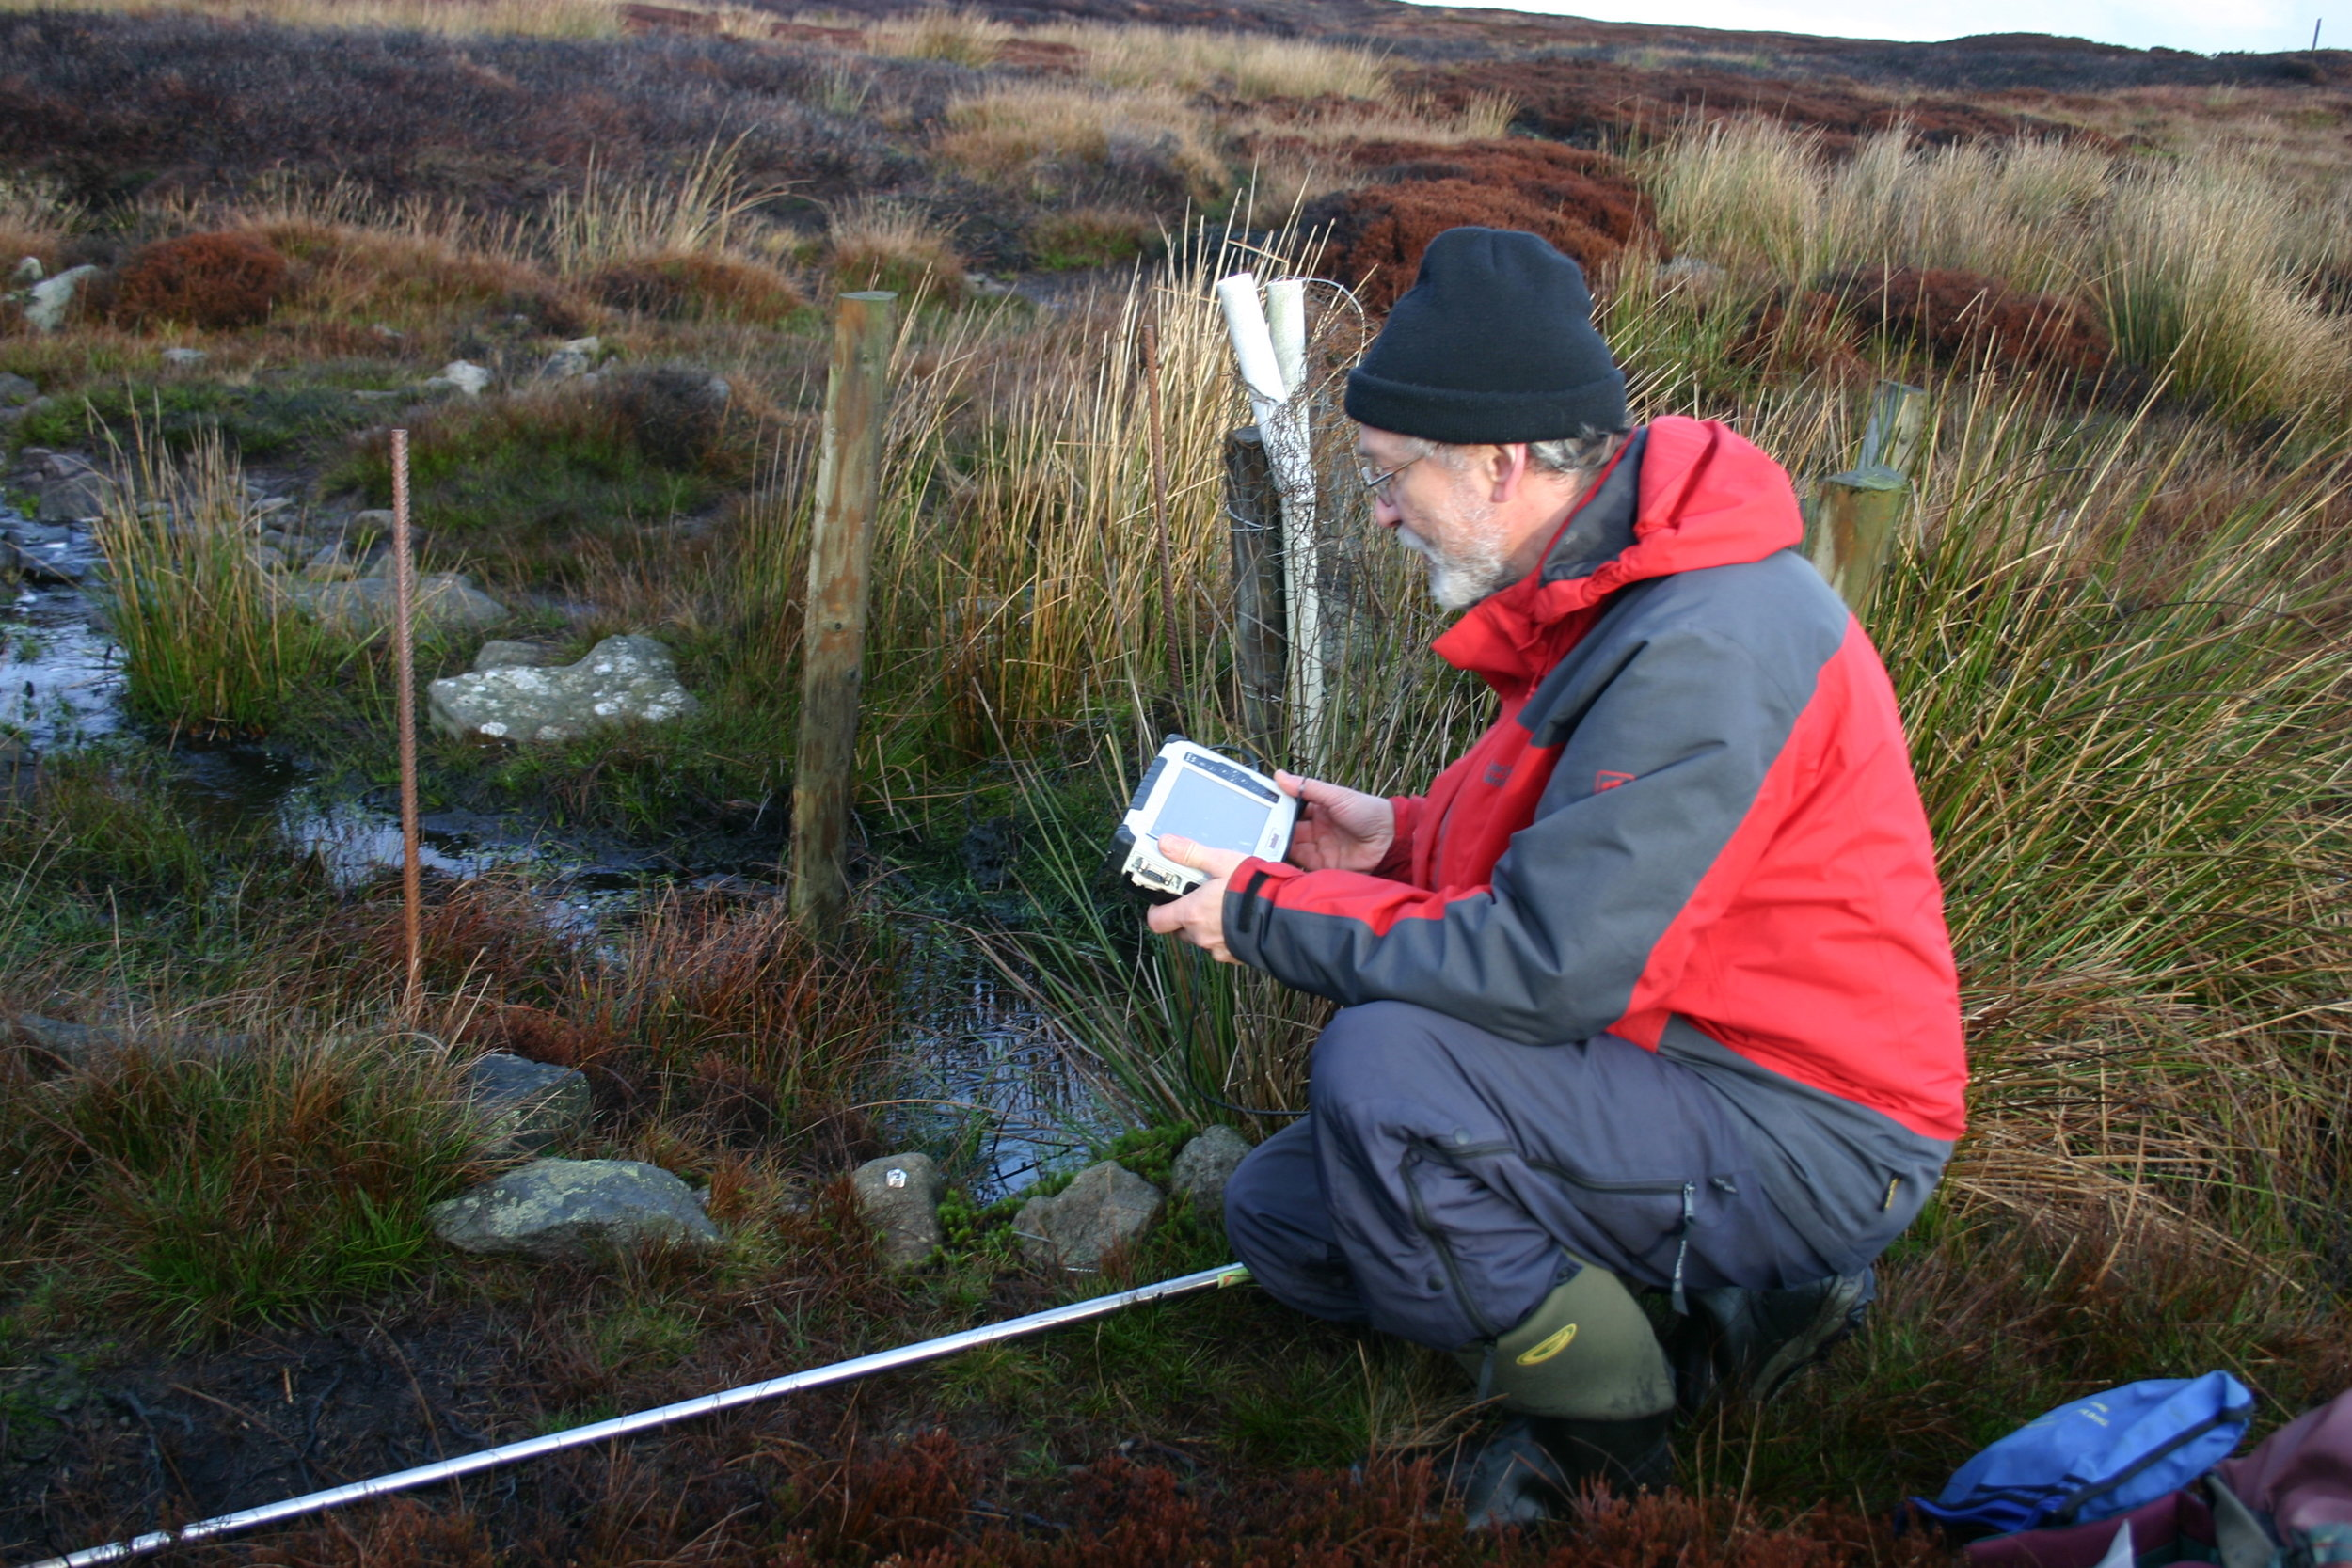 data logging at the mossdale site of the peatland-es-uk long-term experiment